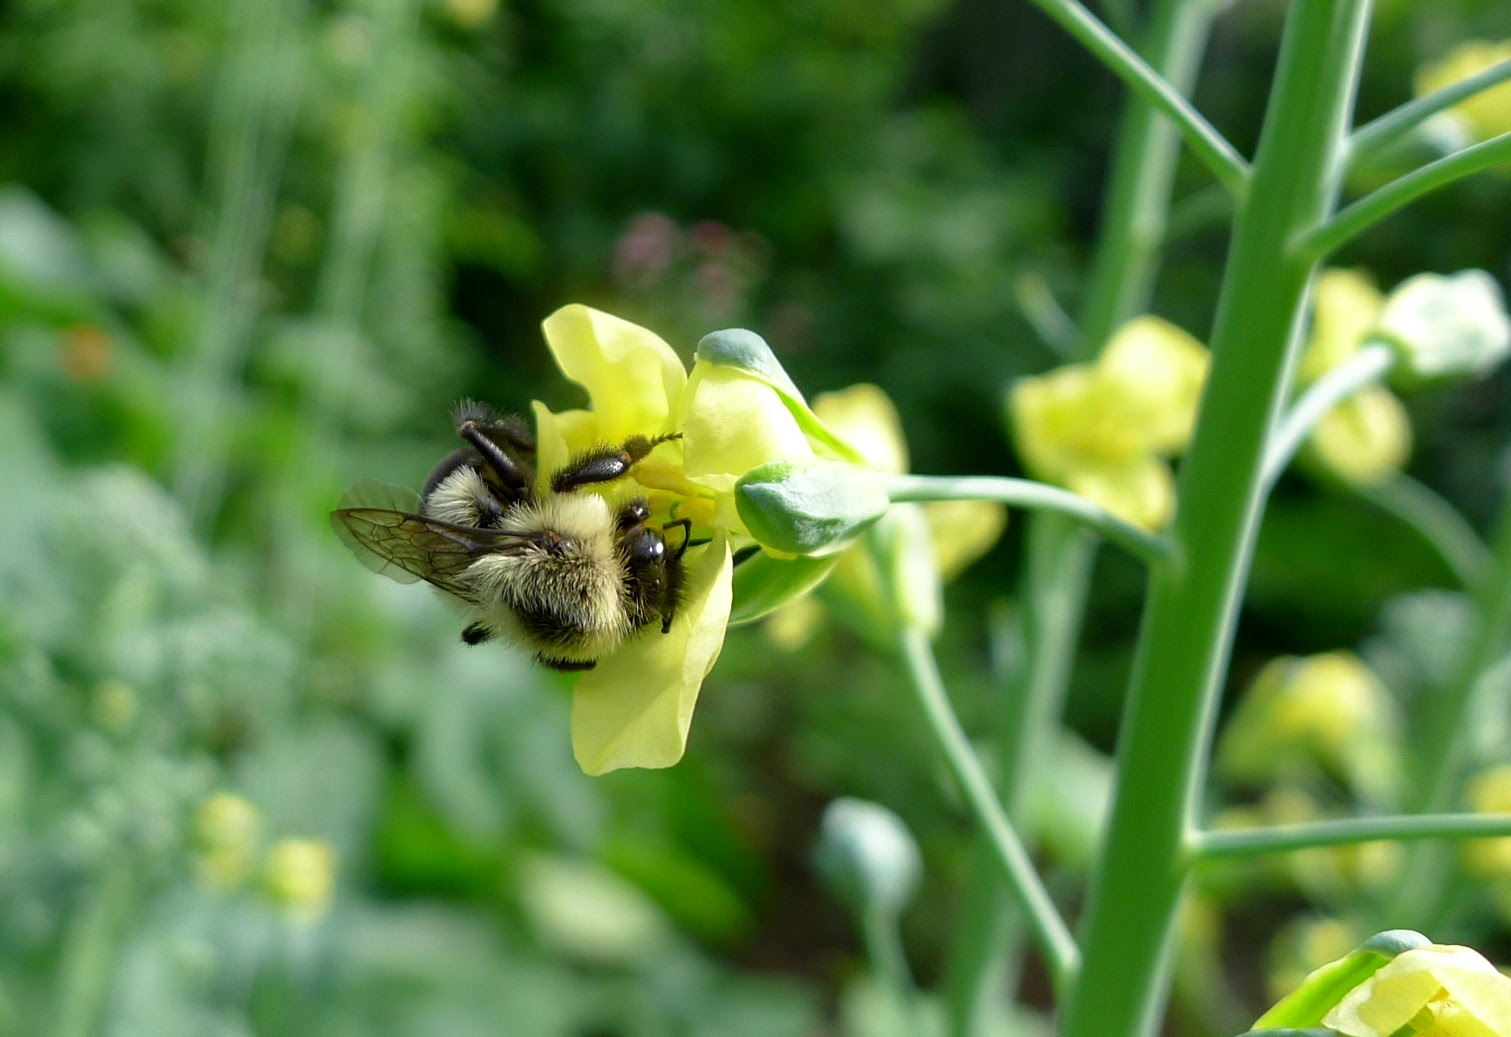 Bumble Bee on Broccoli Flower